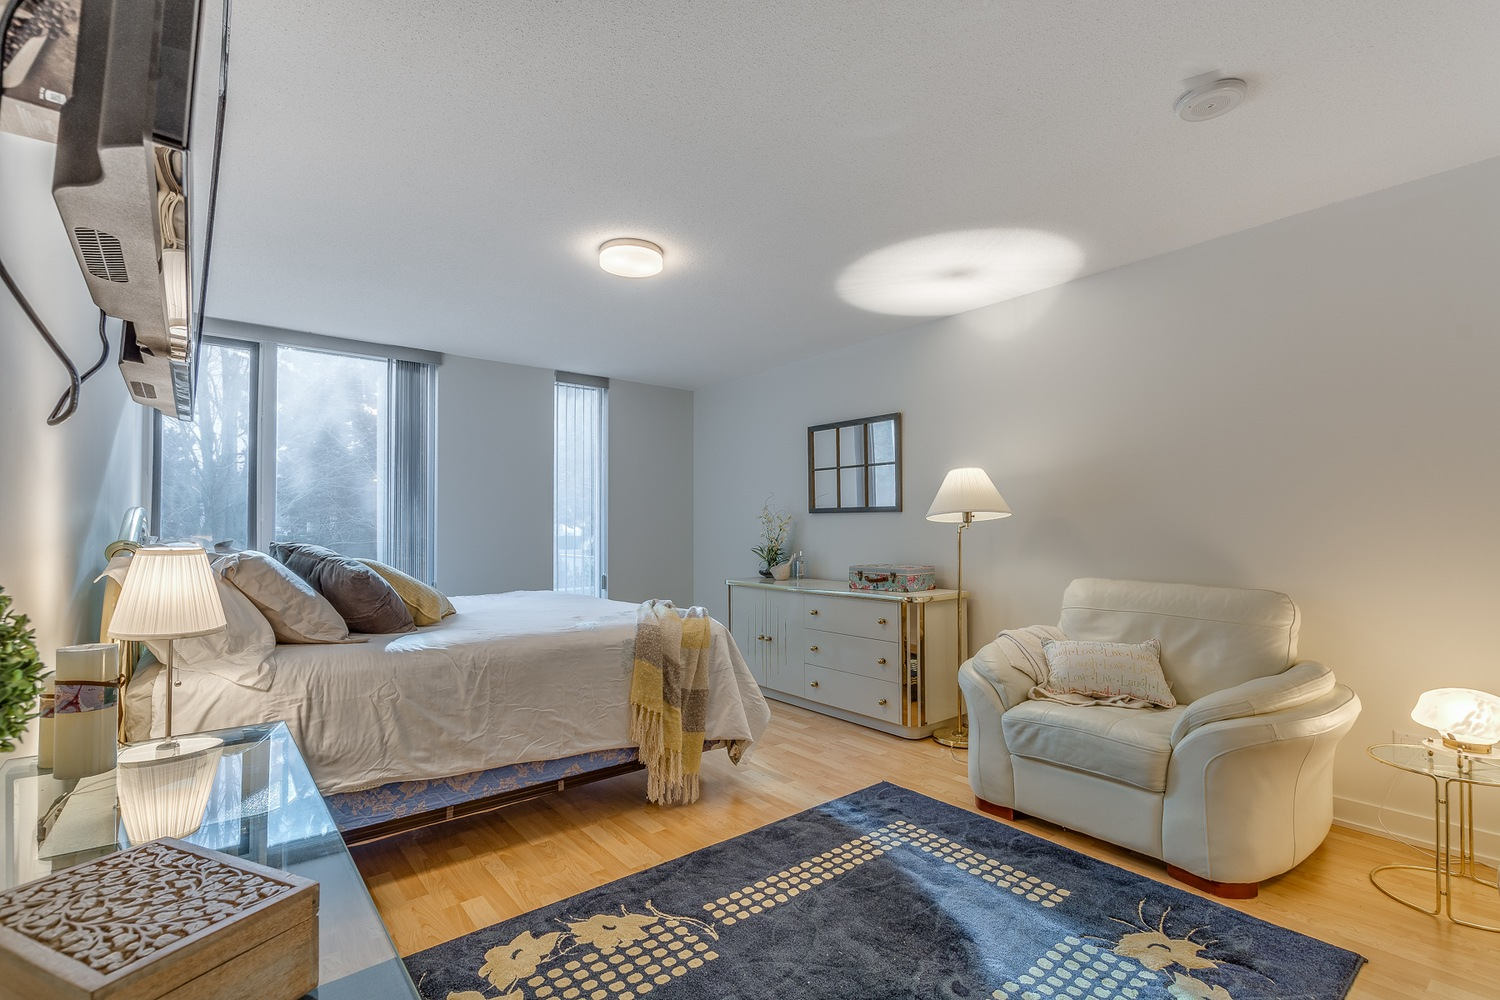 Listing Image of 7009 8080 Granville Avenue